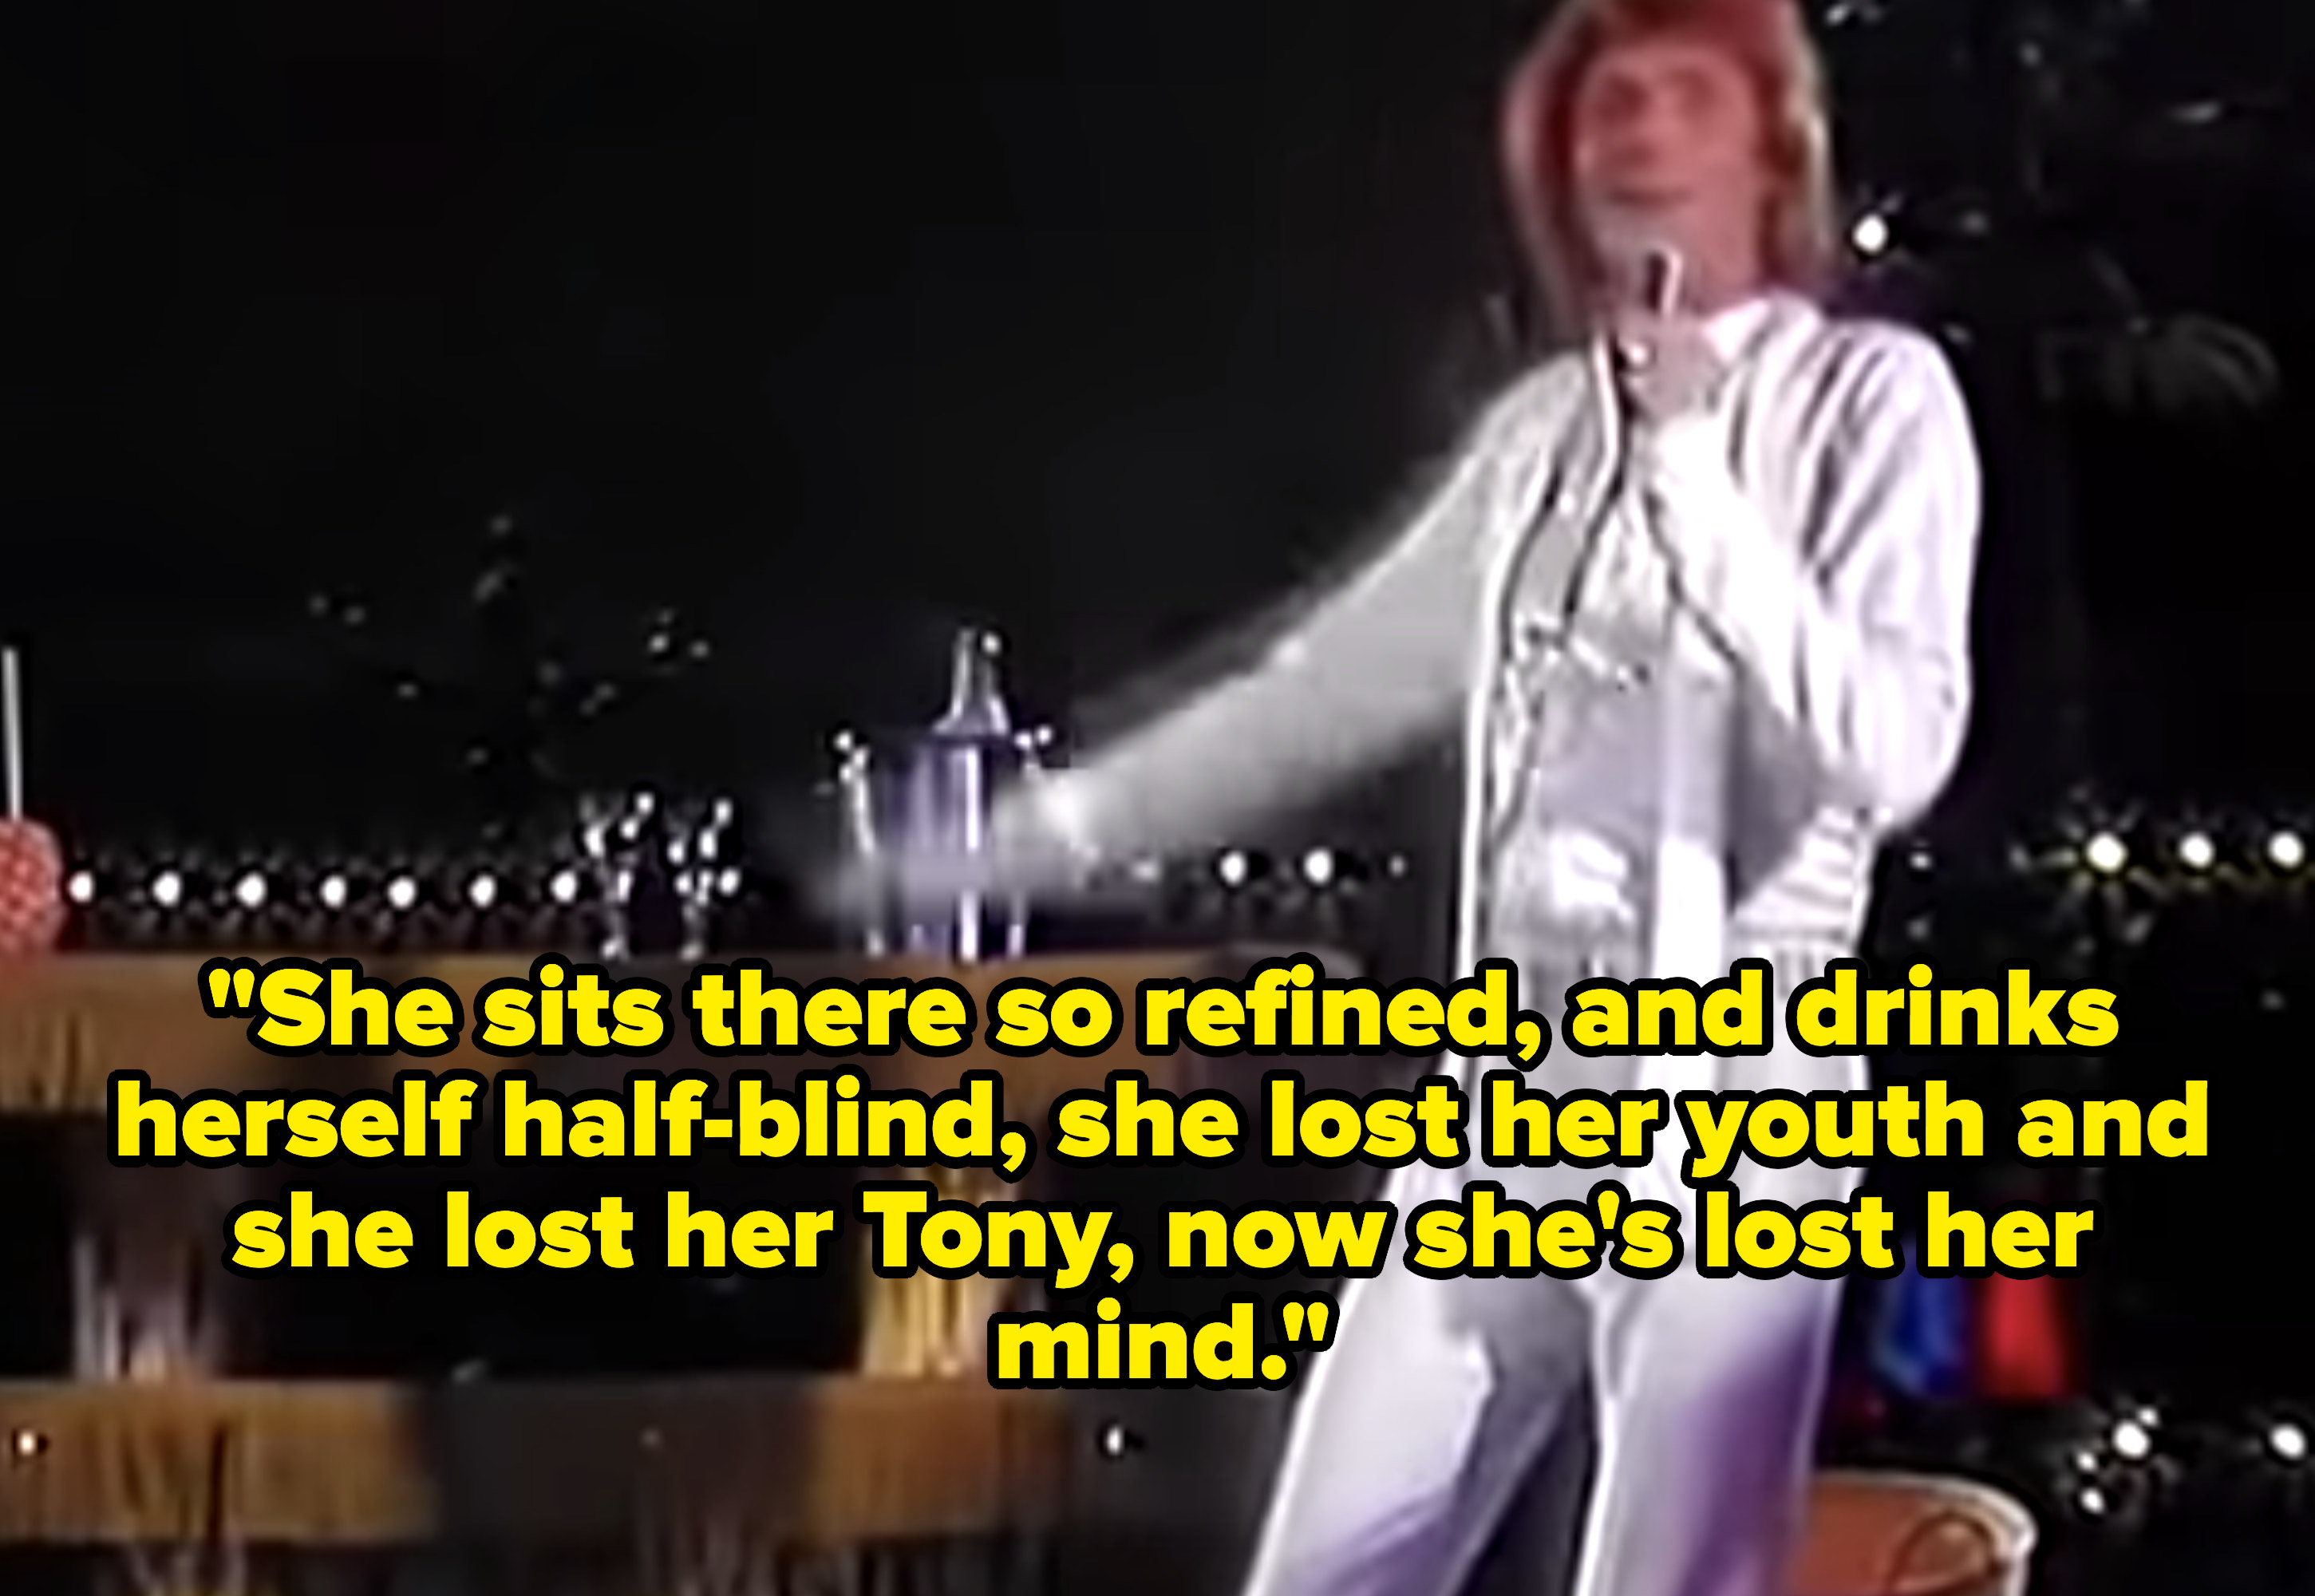 Barry Manilow singing in a bright, white suit.